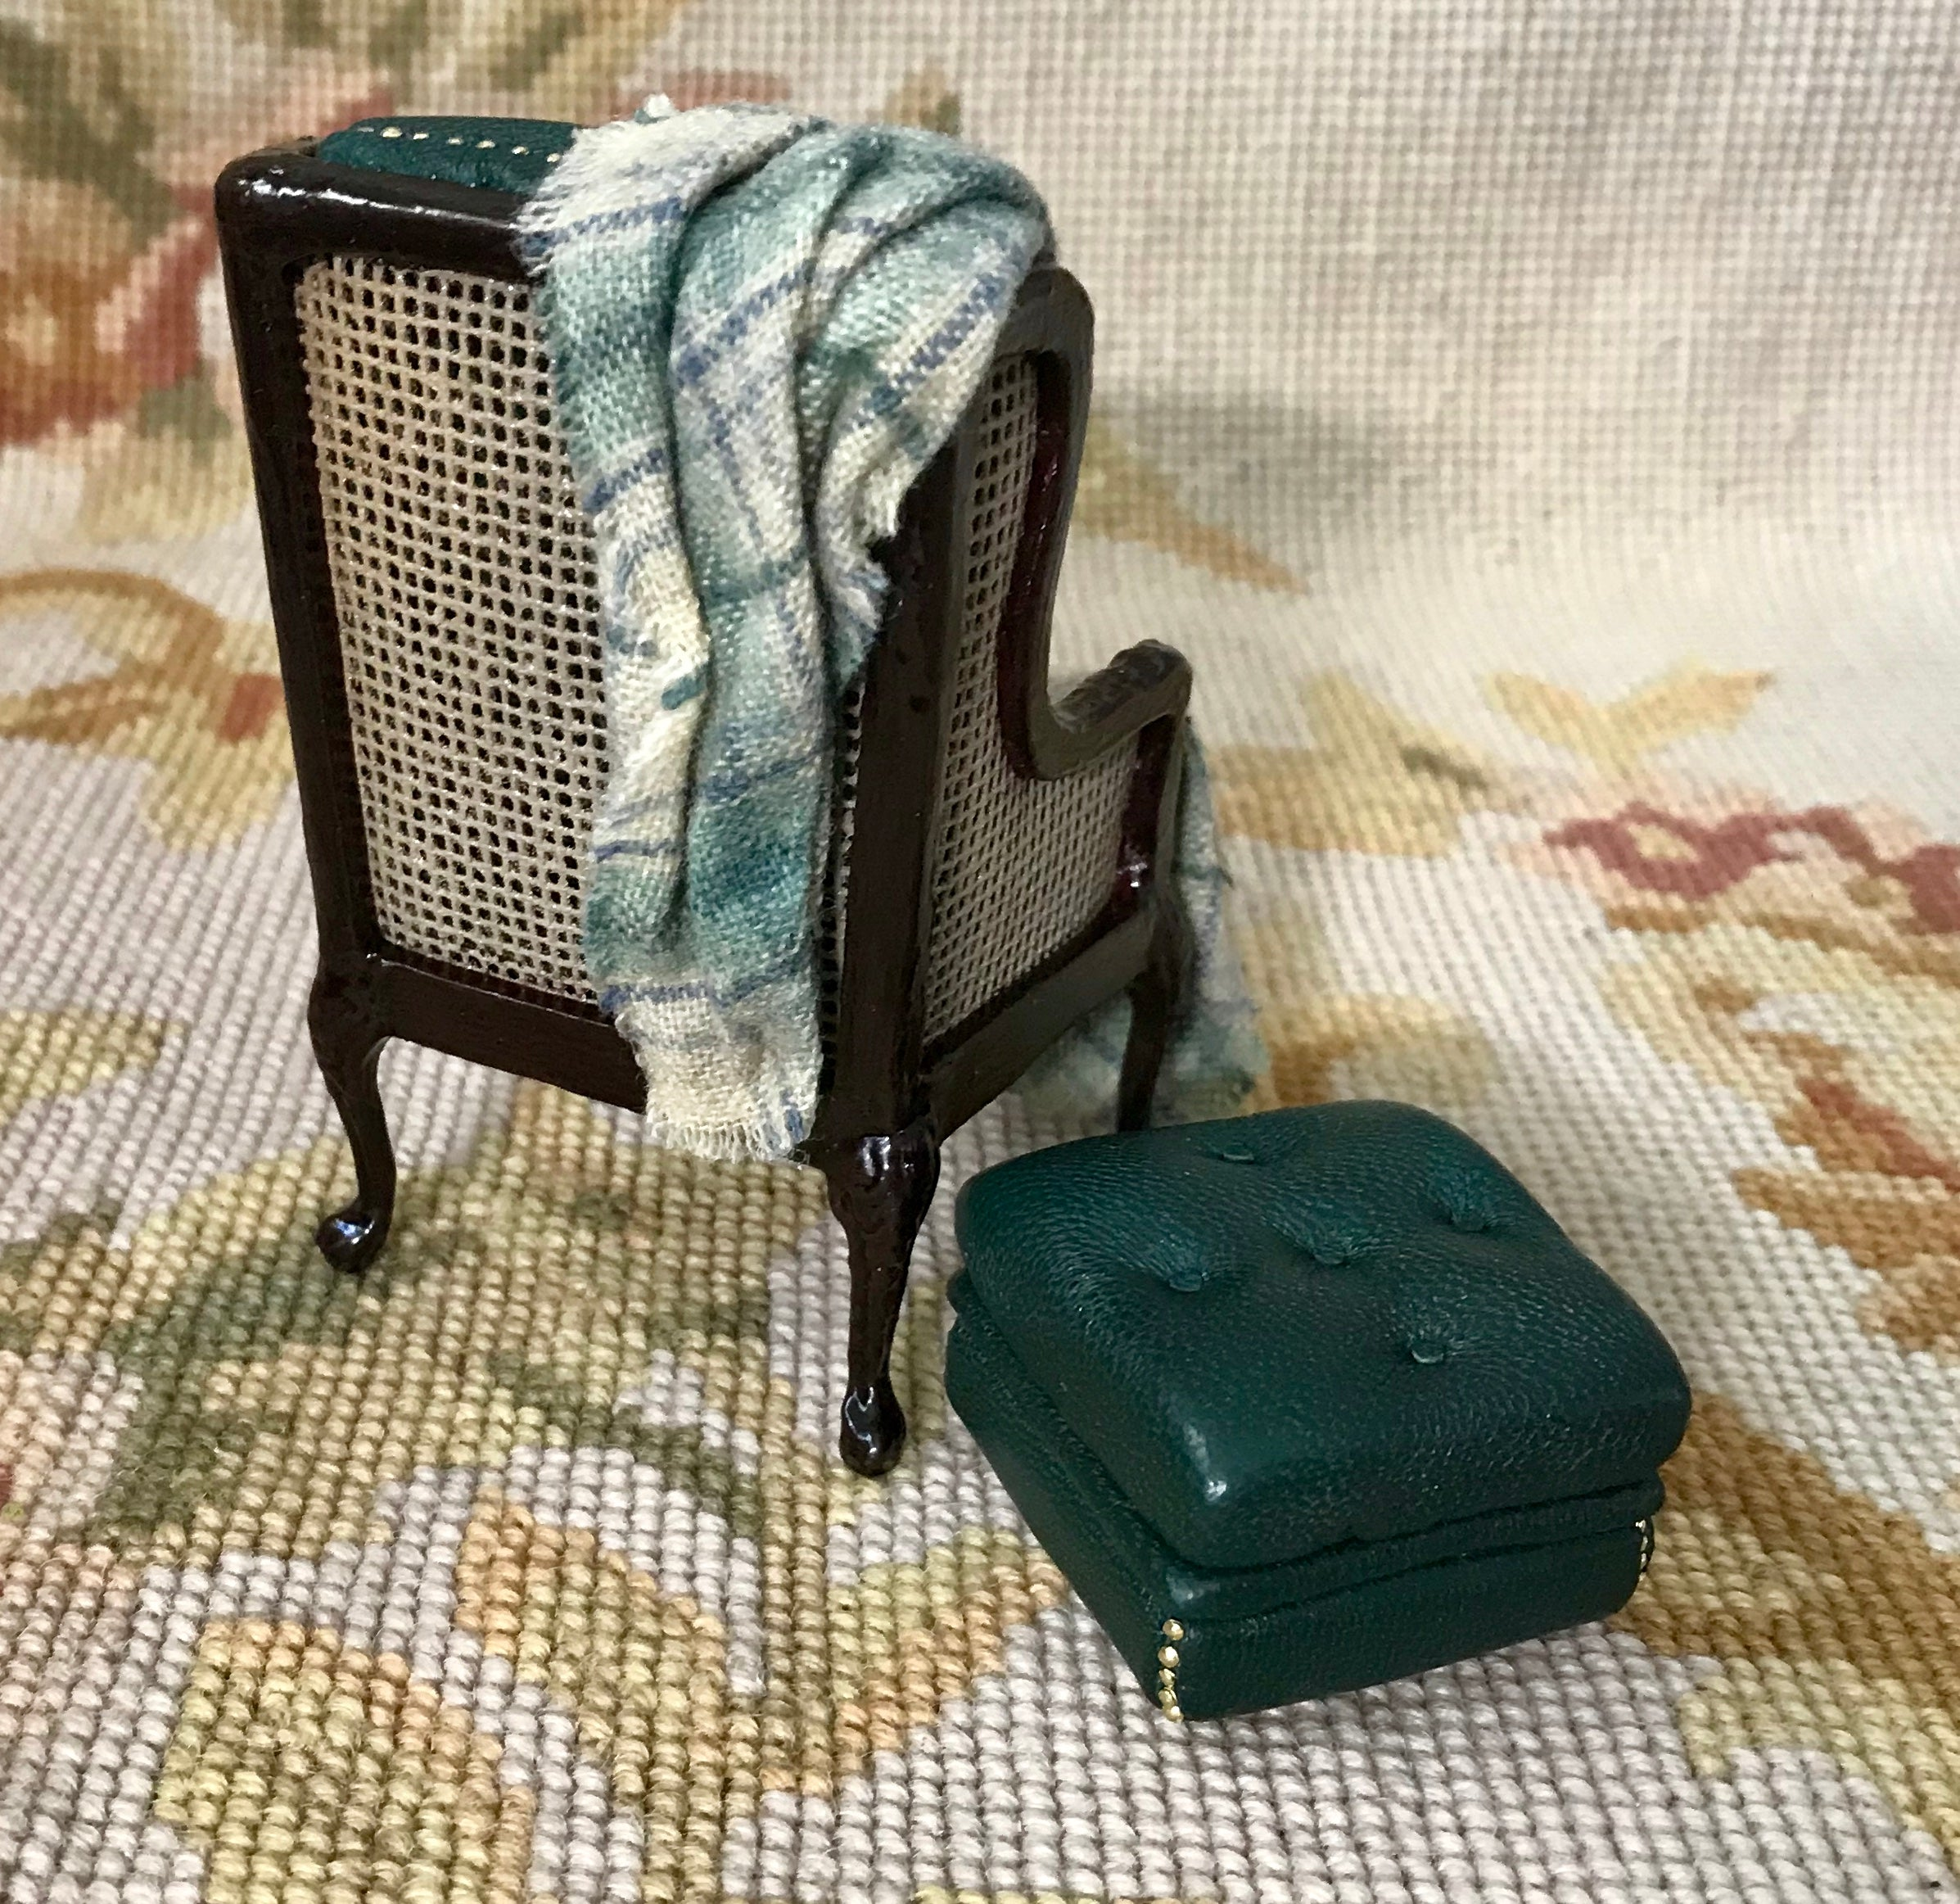 Chair Seat & Stool Ottoman With Drape & Pillow SPECIAL ORDER  1:12 Dollhouse Miniature